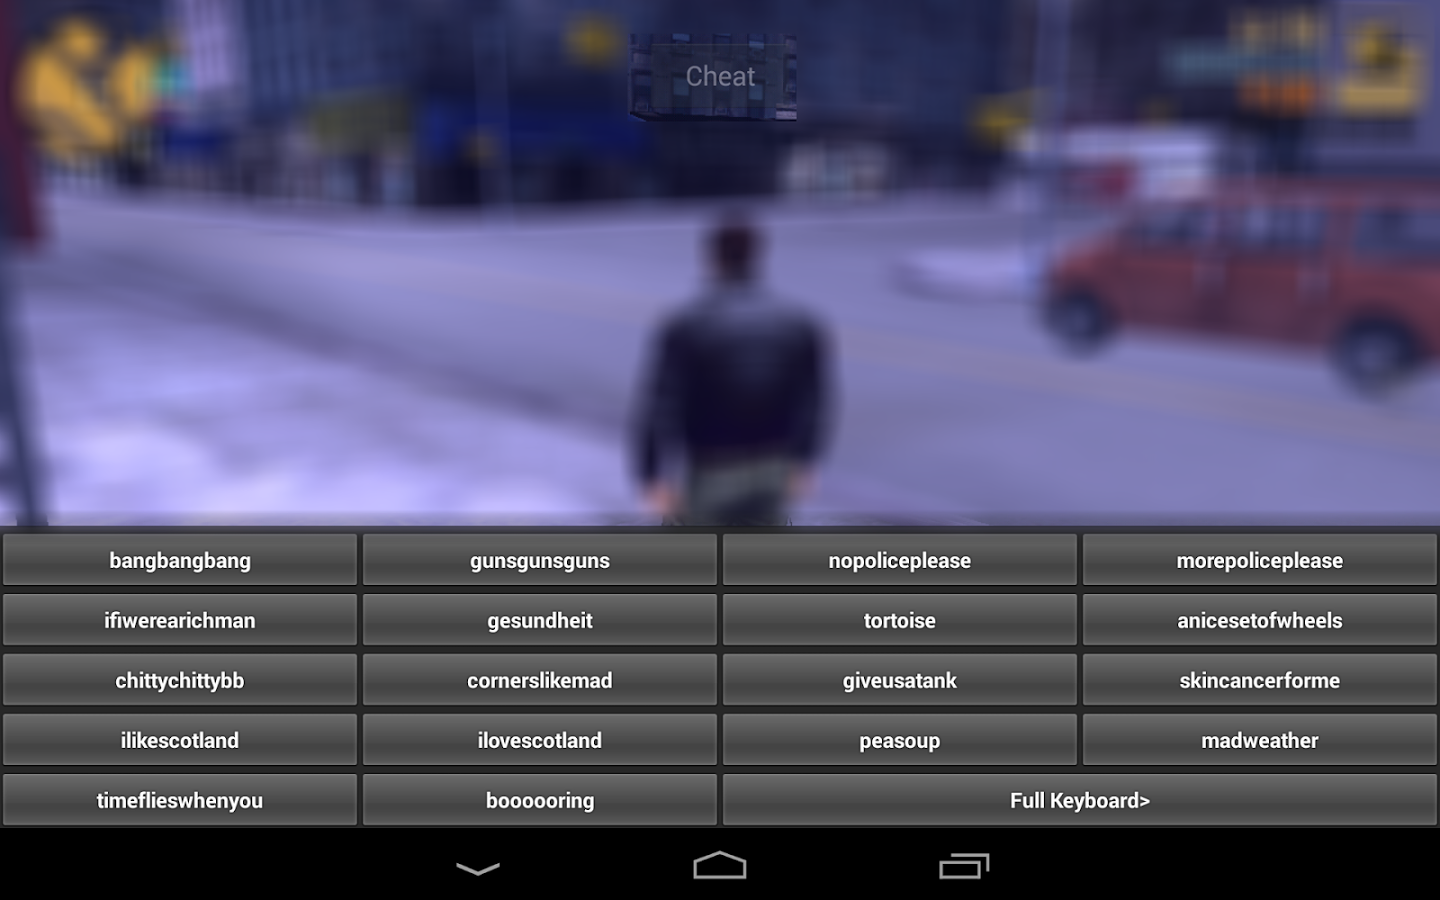 Jcheater Gta Iii Edition Download And Install Android